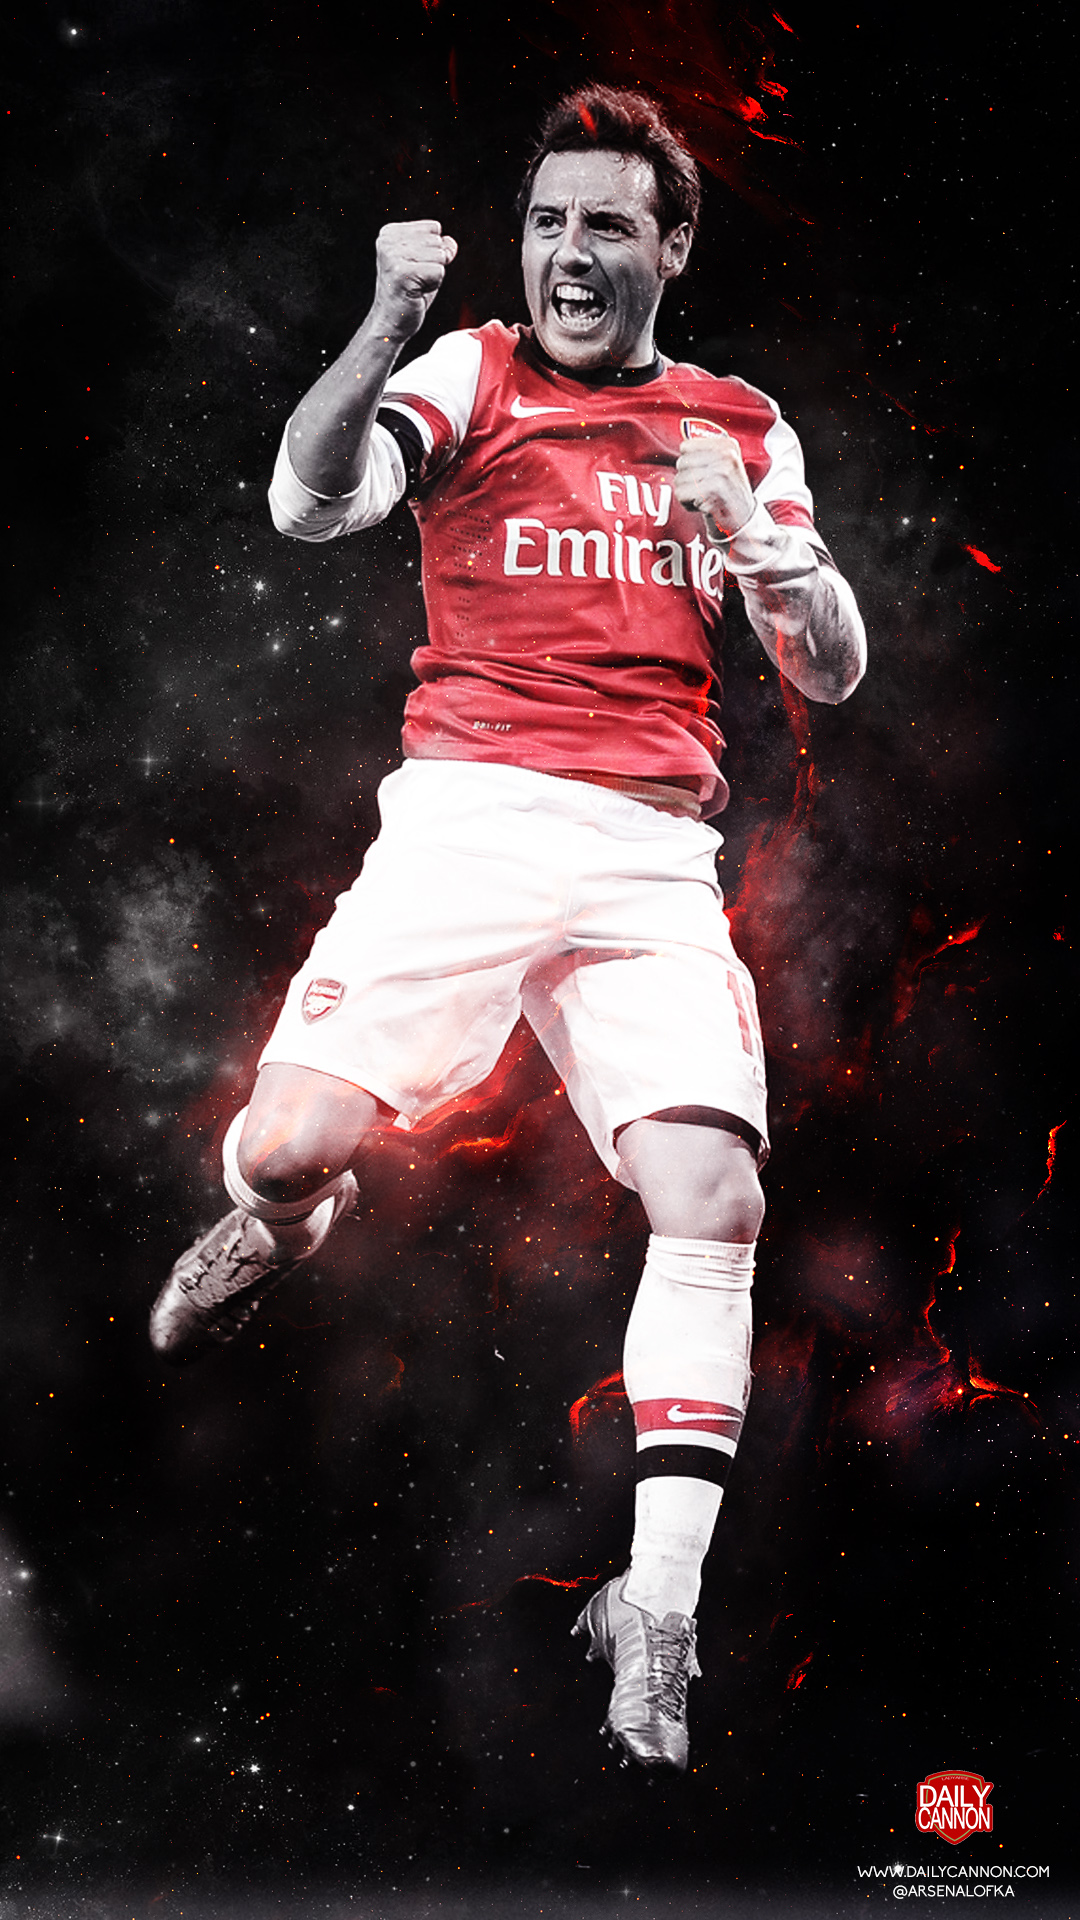 8 Arsenal Mobile Wallpapers Featuring Players Worthy Of Wearing The Shirt Daily Cannon